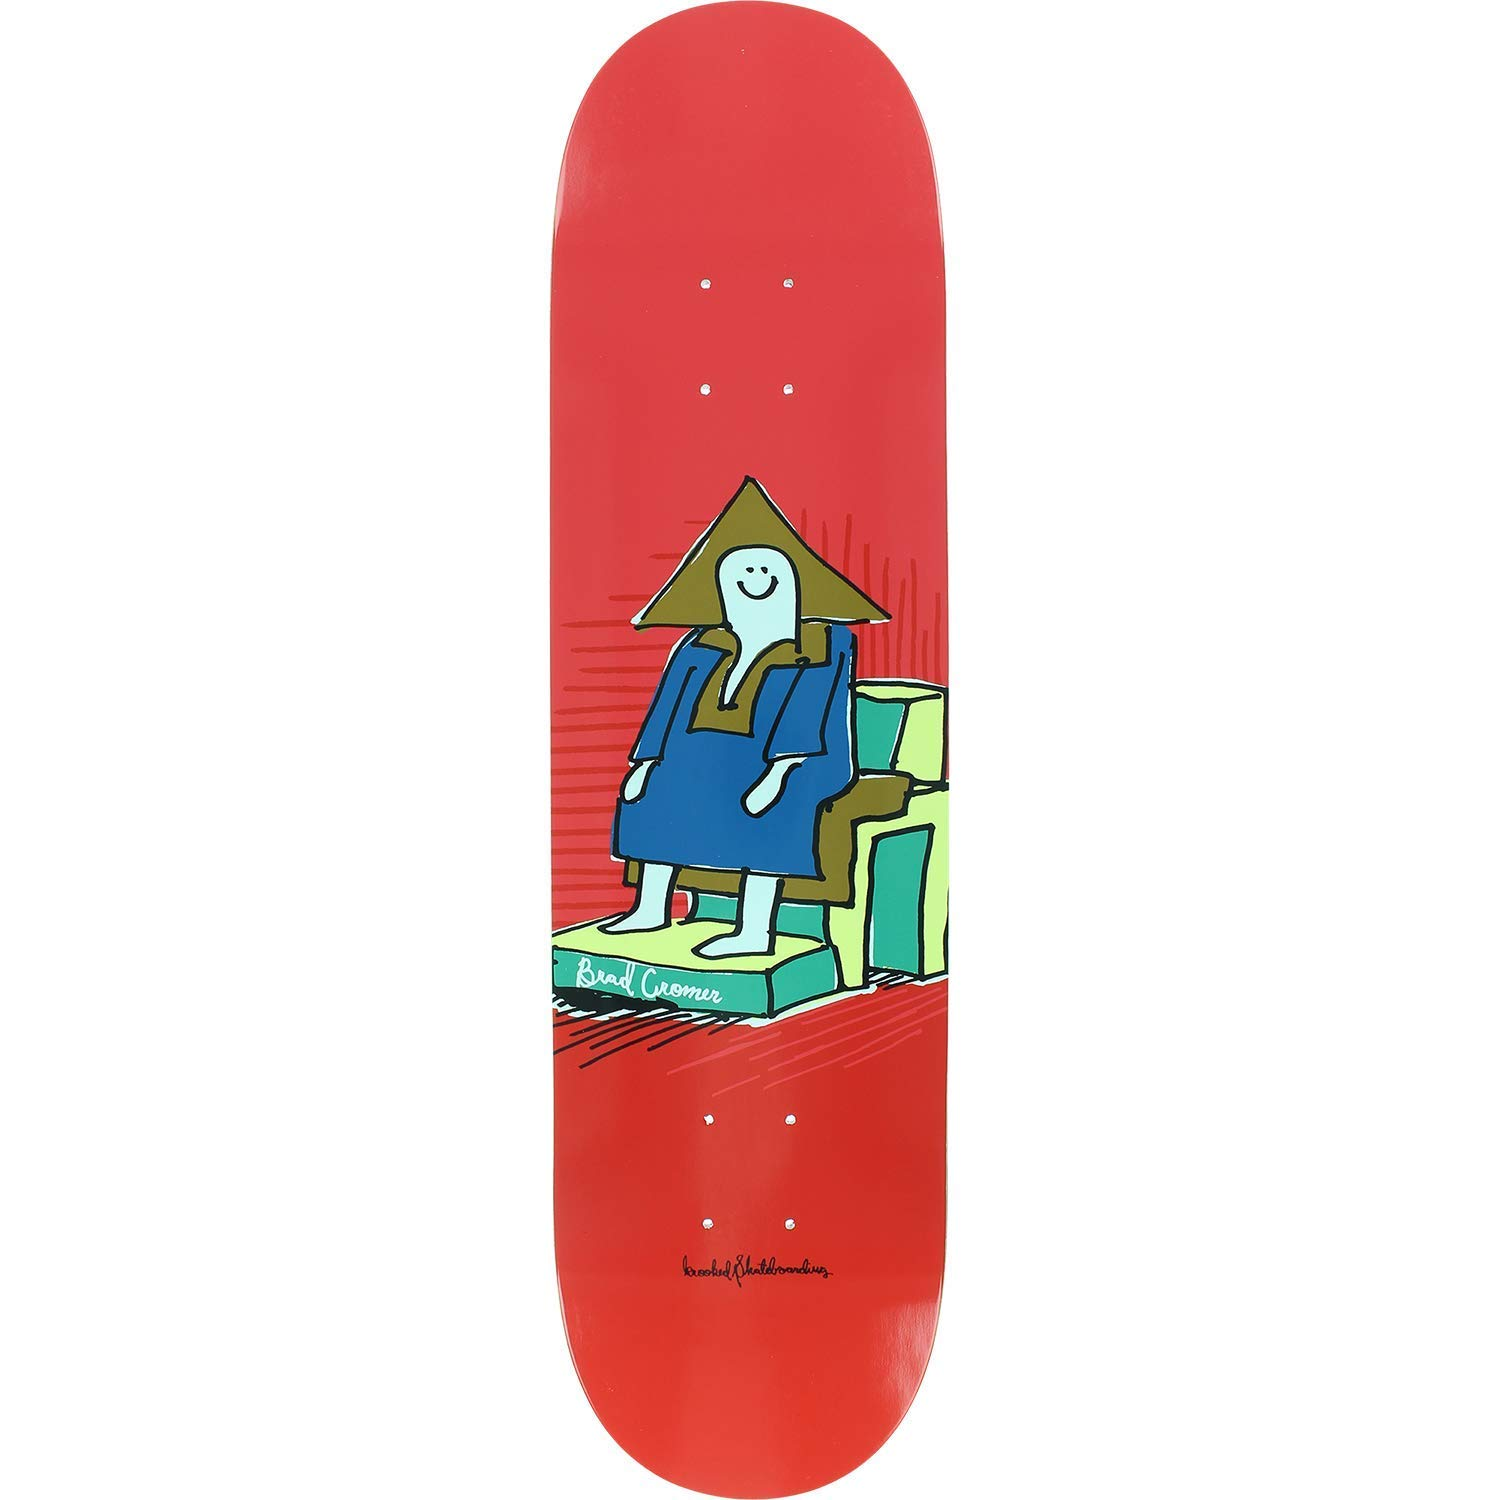 Get Quotations Krooked Brad Cromer Hi Chair Skateboard Deck 8 06 Only Bundled With Free